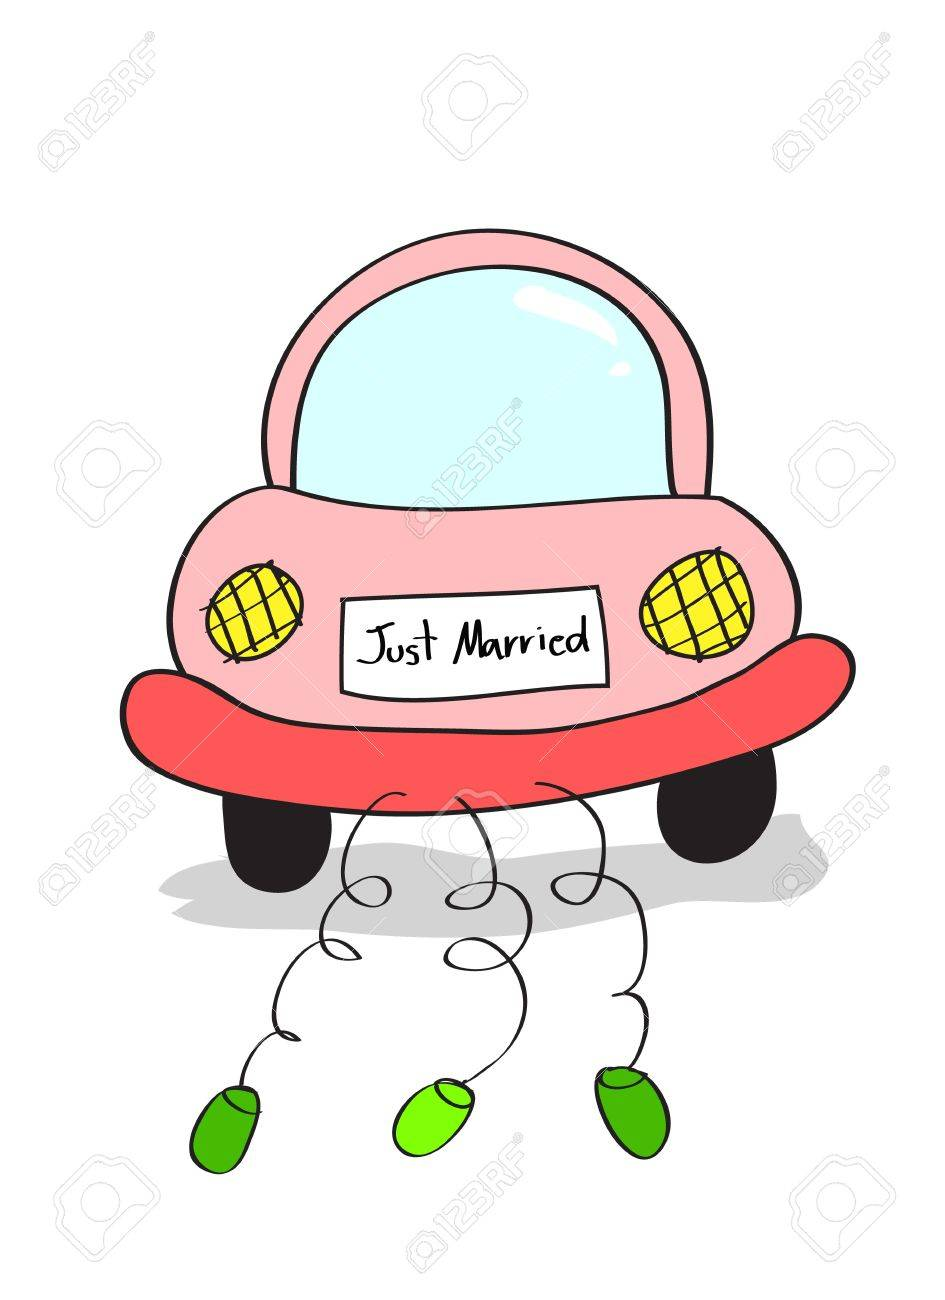 945x1300 Hand Drawing Illustration Of Just Married On Car Driving Cartoon